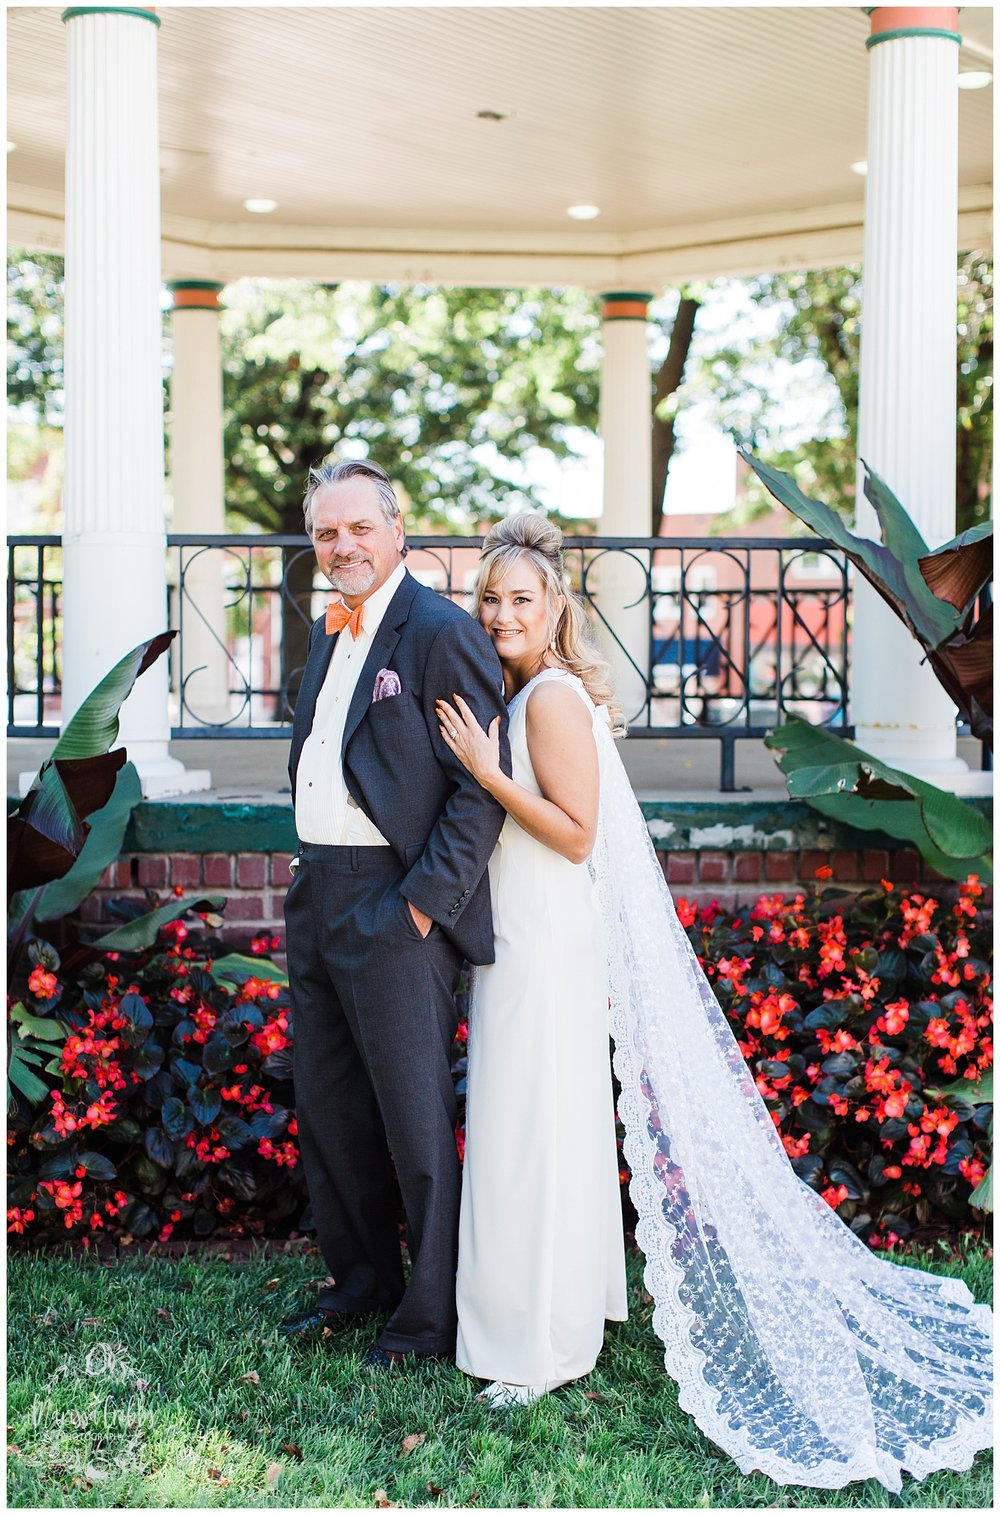 TOWN SQUARE PAOLA WEDDING | BRANDY & TERRY | MARISSA CRIBBS PHOTOGRAPHY_3081.jpg